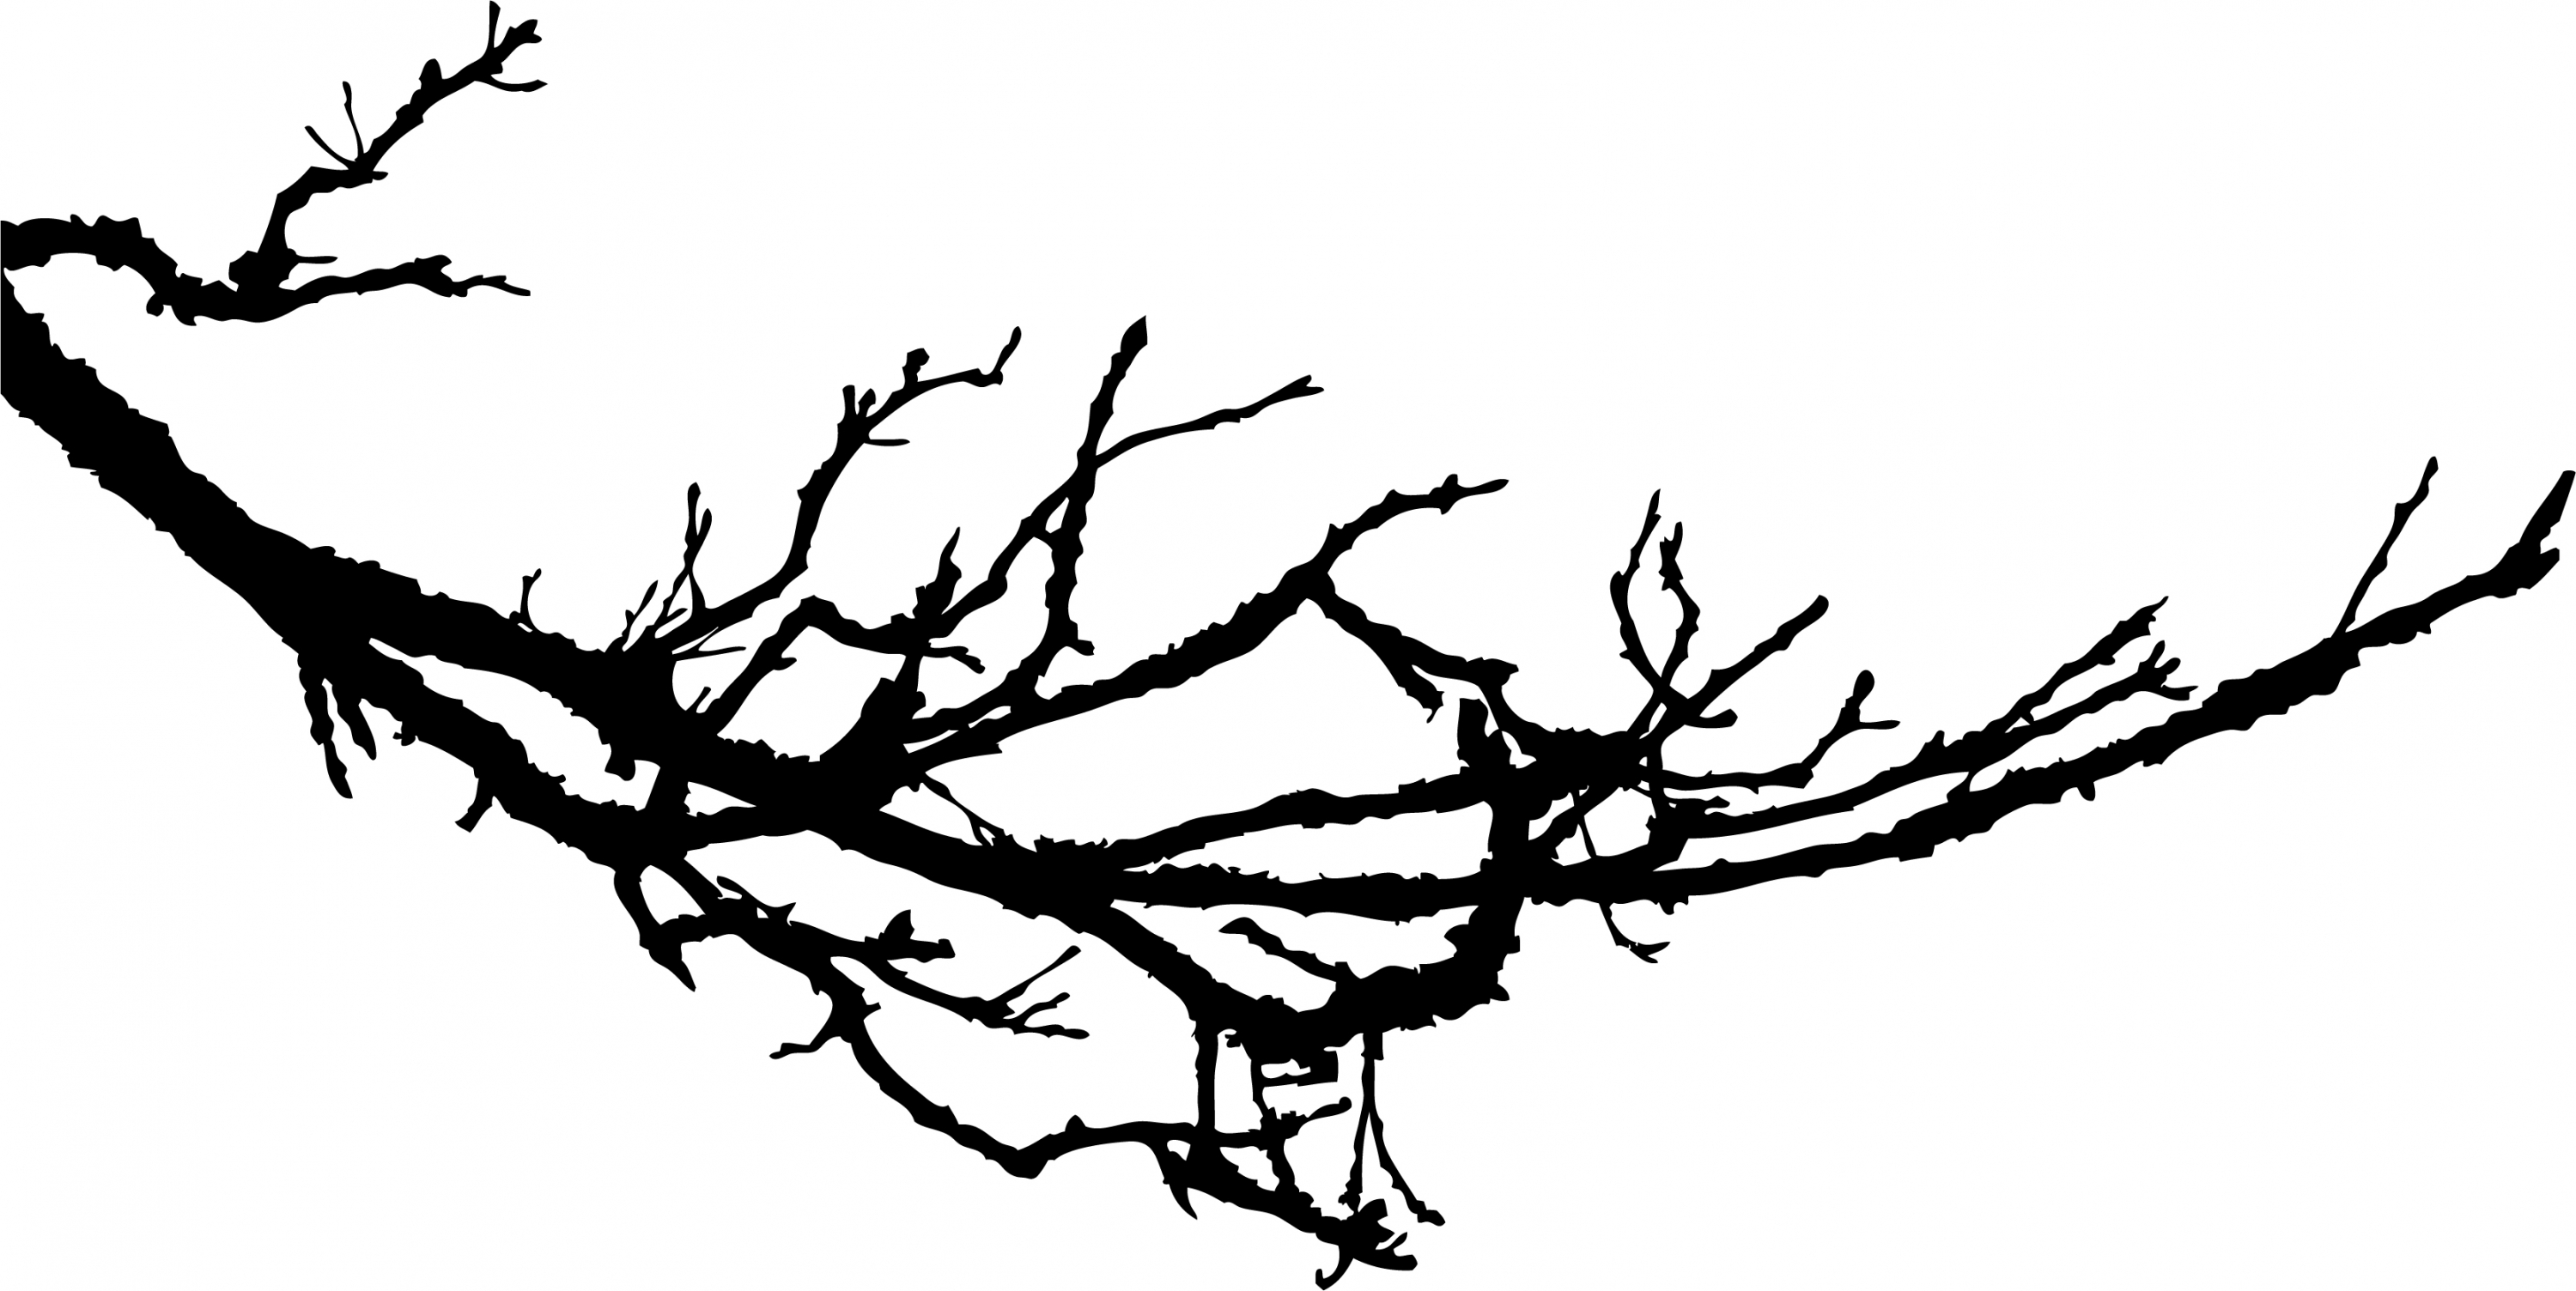 Tree Branch Vector Wallpaper High Quality Nature